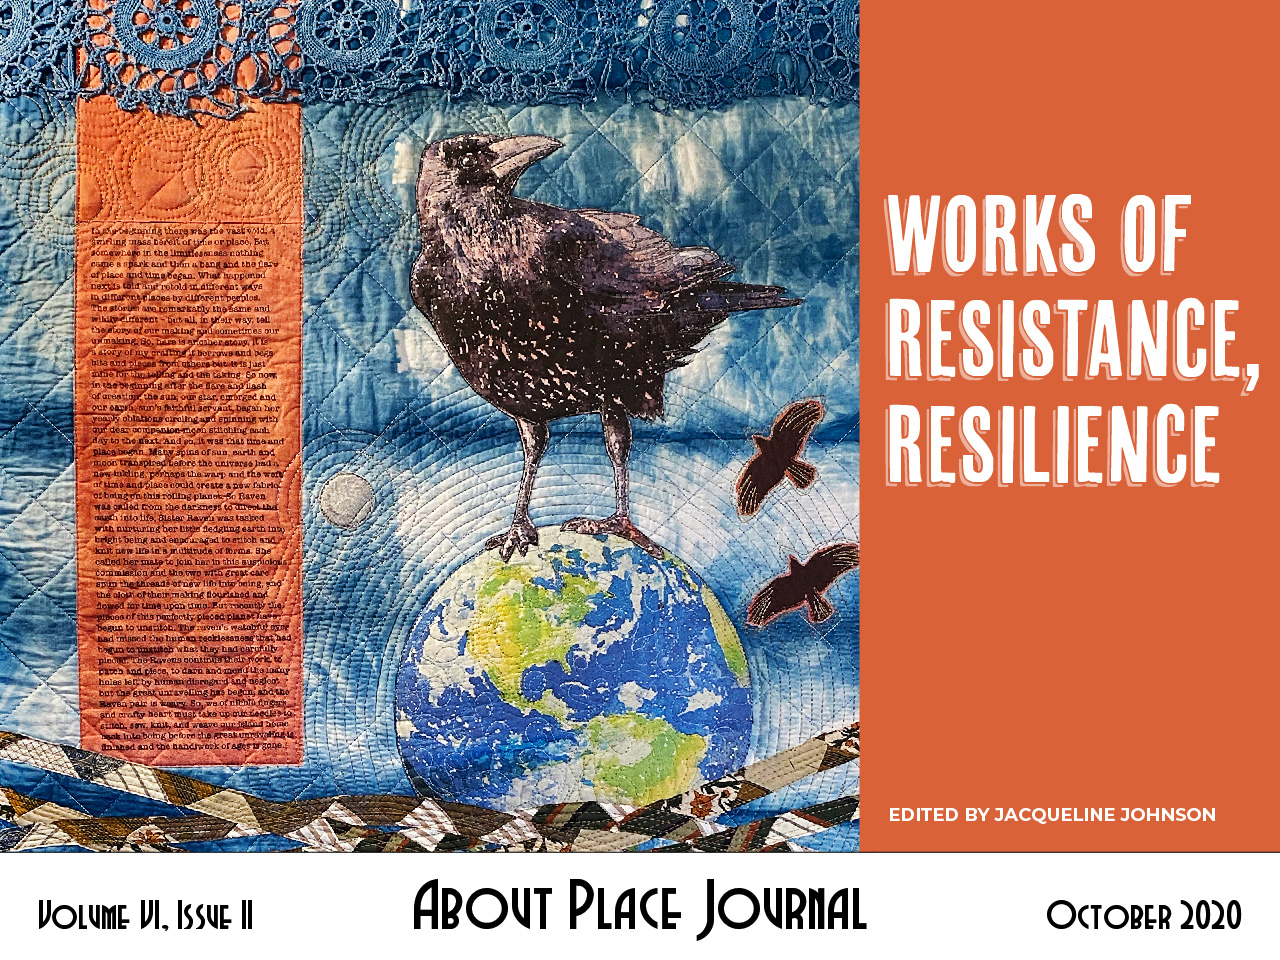 Works of Resistance, Resilience cover – Volume VI, Issue II, About Place Journal, October 2020 – Edited by Jacqueline Johnson